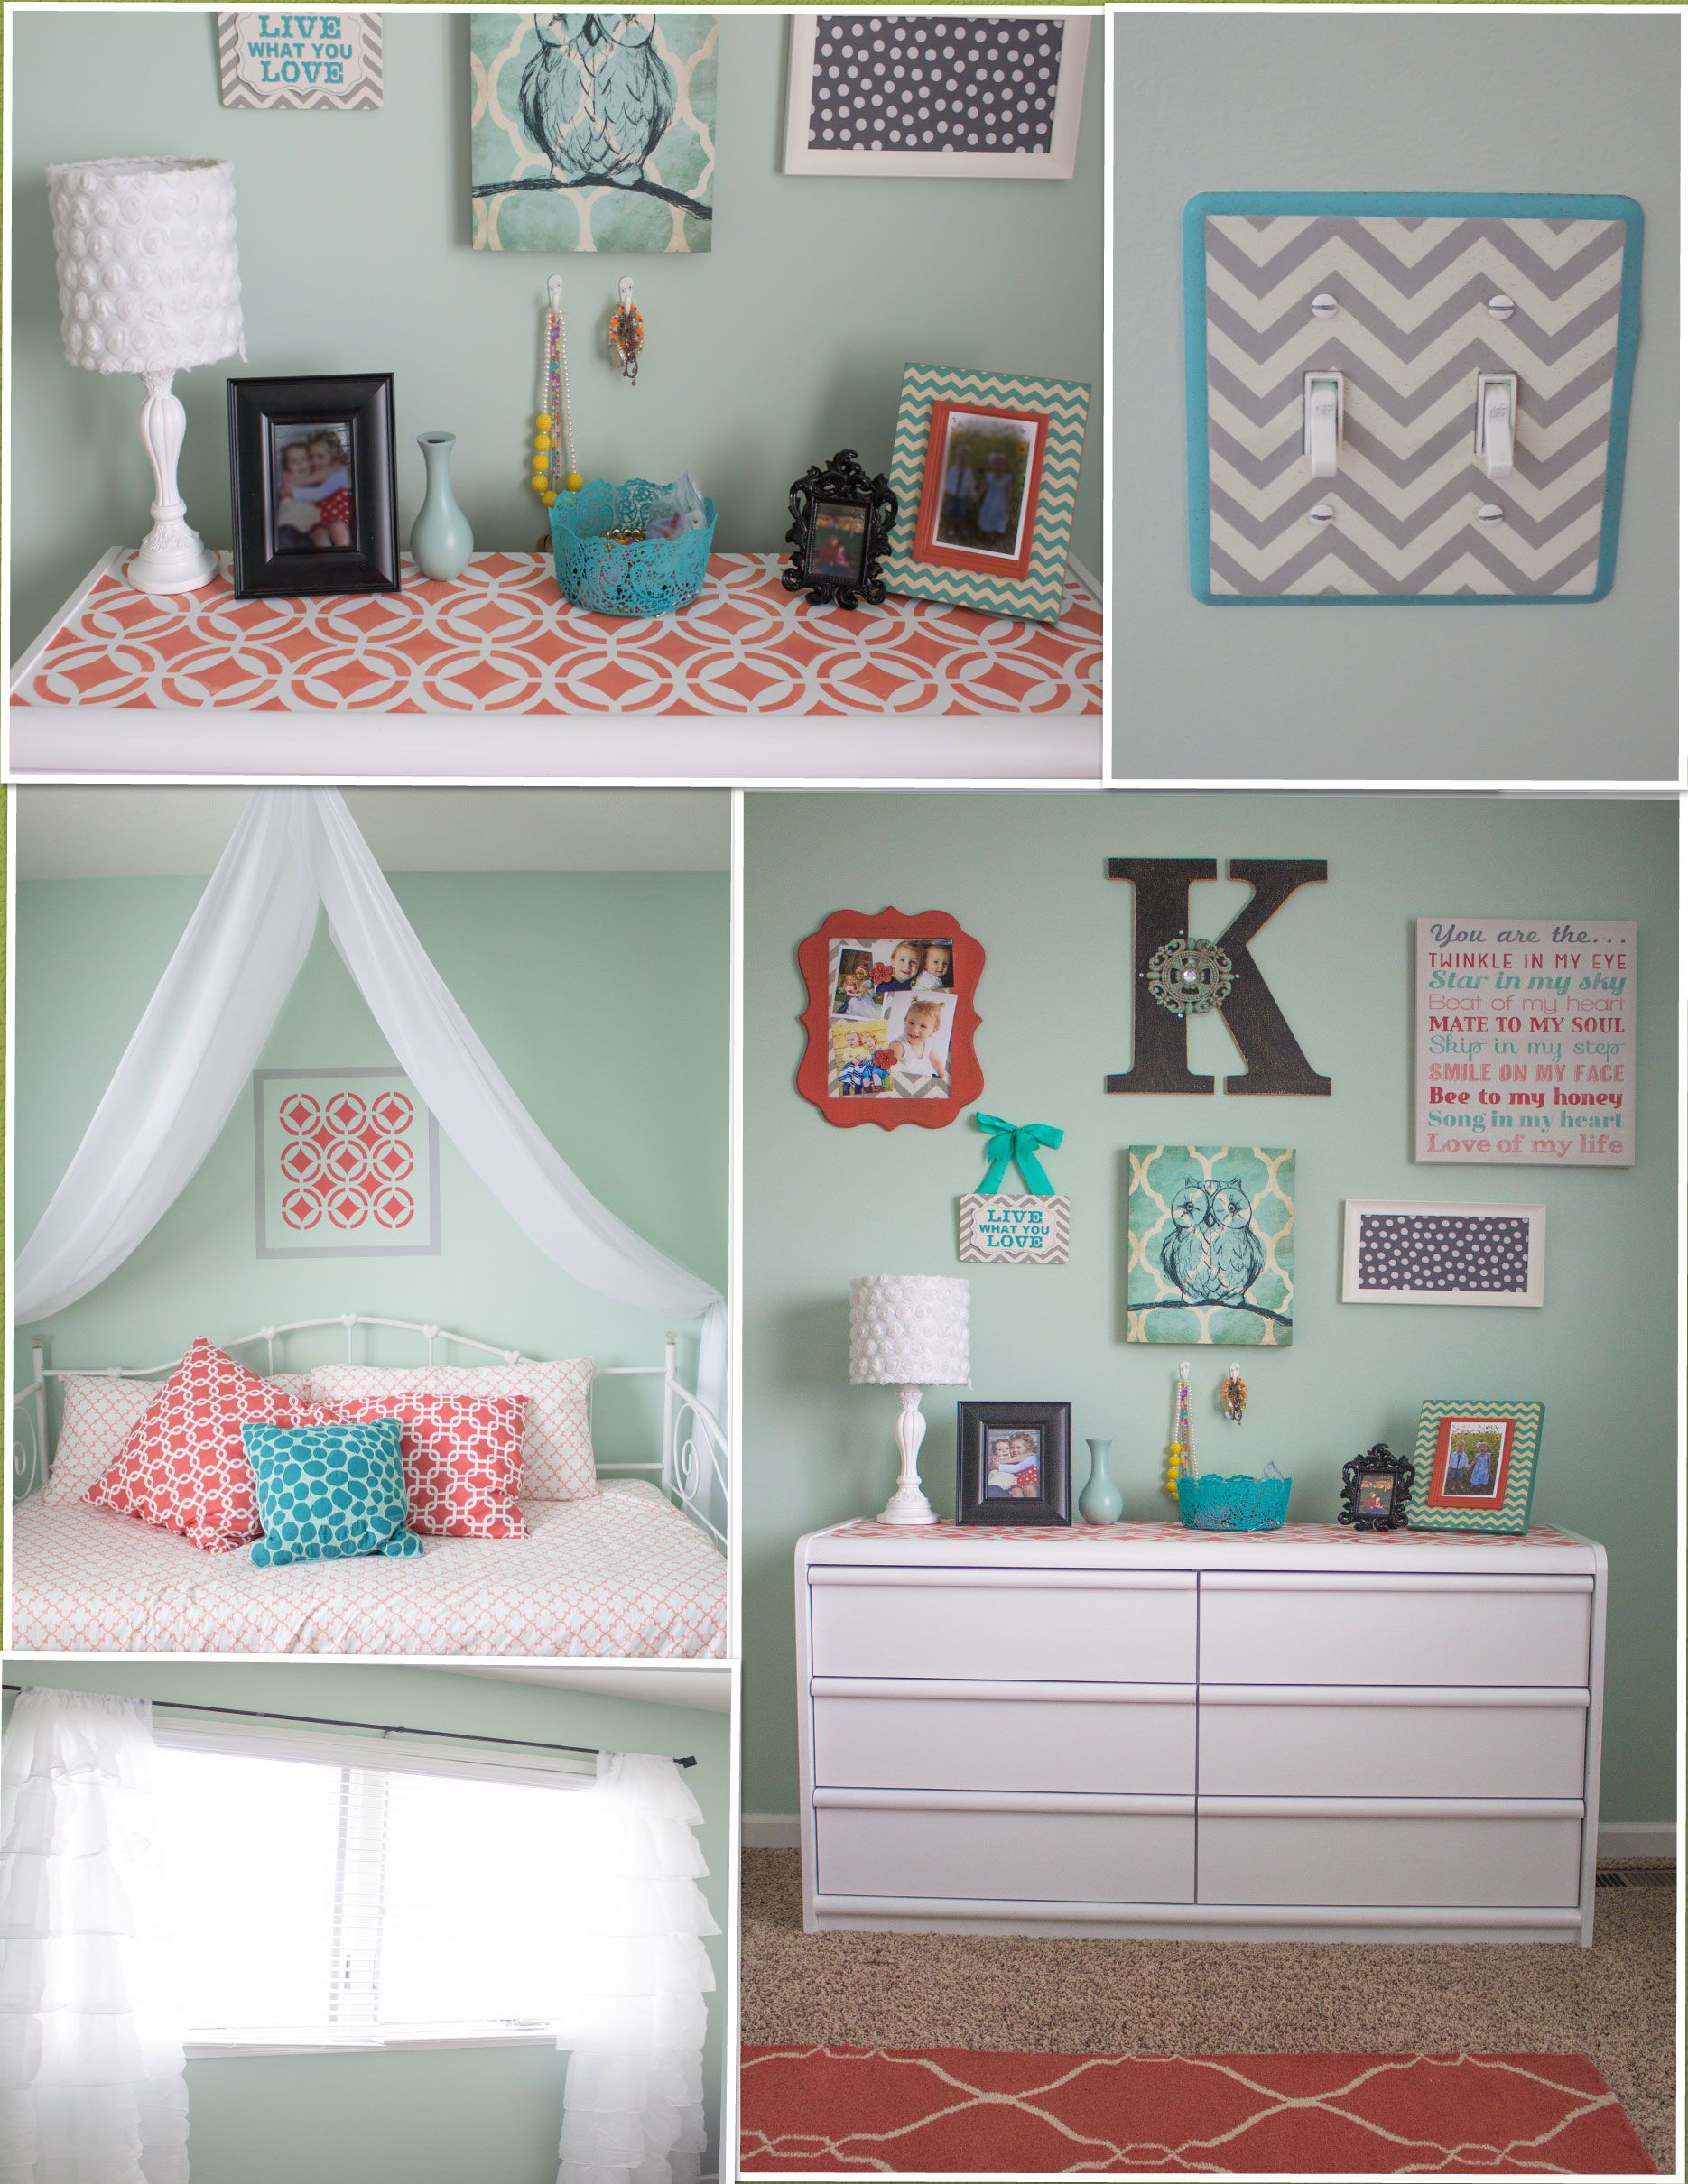 Teal And Pink Bedroom Decor My New Favorite Room In The House Love My Mint And Coral Creation